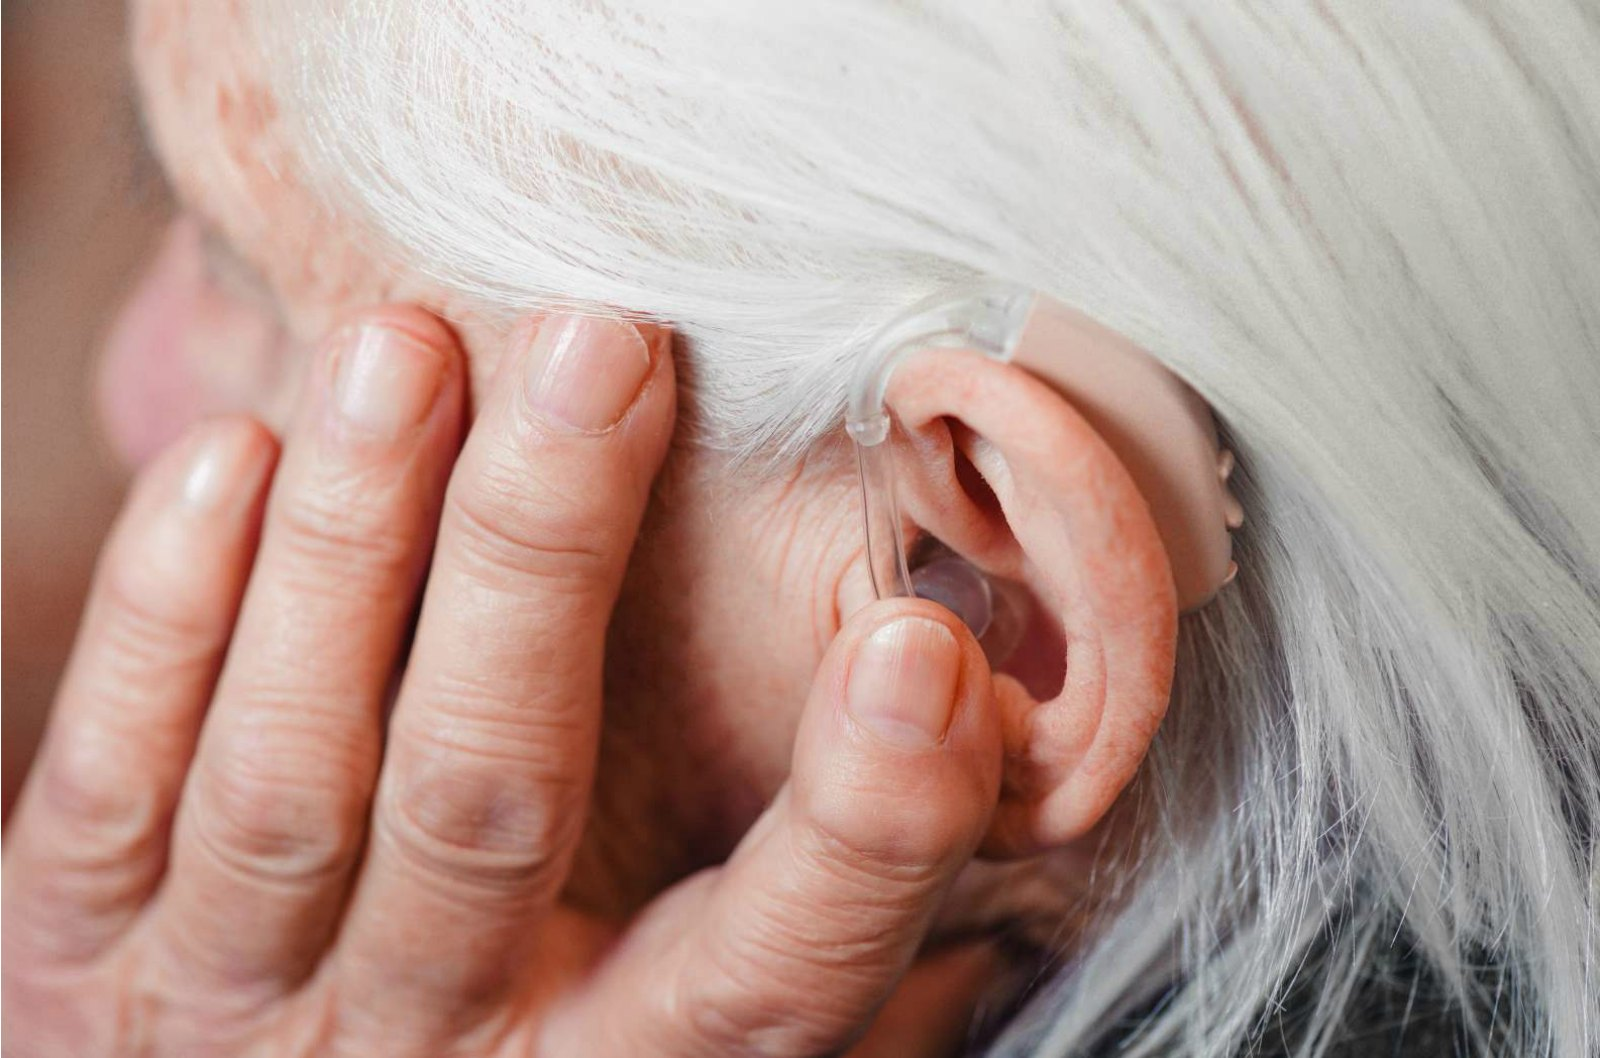 Innovative Computer Tool Helps Hearing Impaired 'Train' at Home